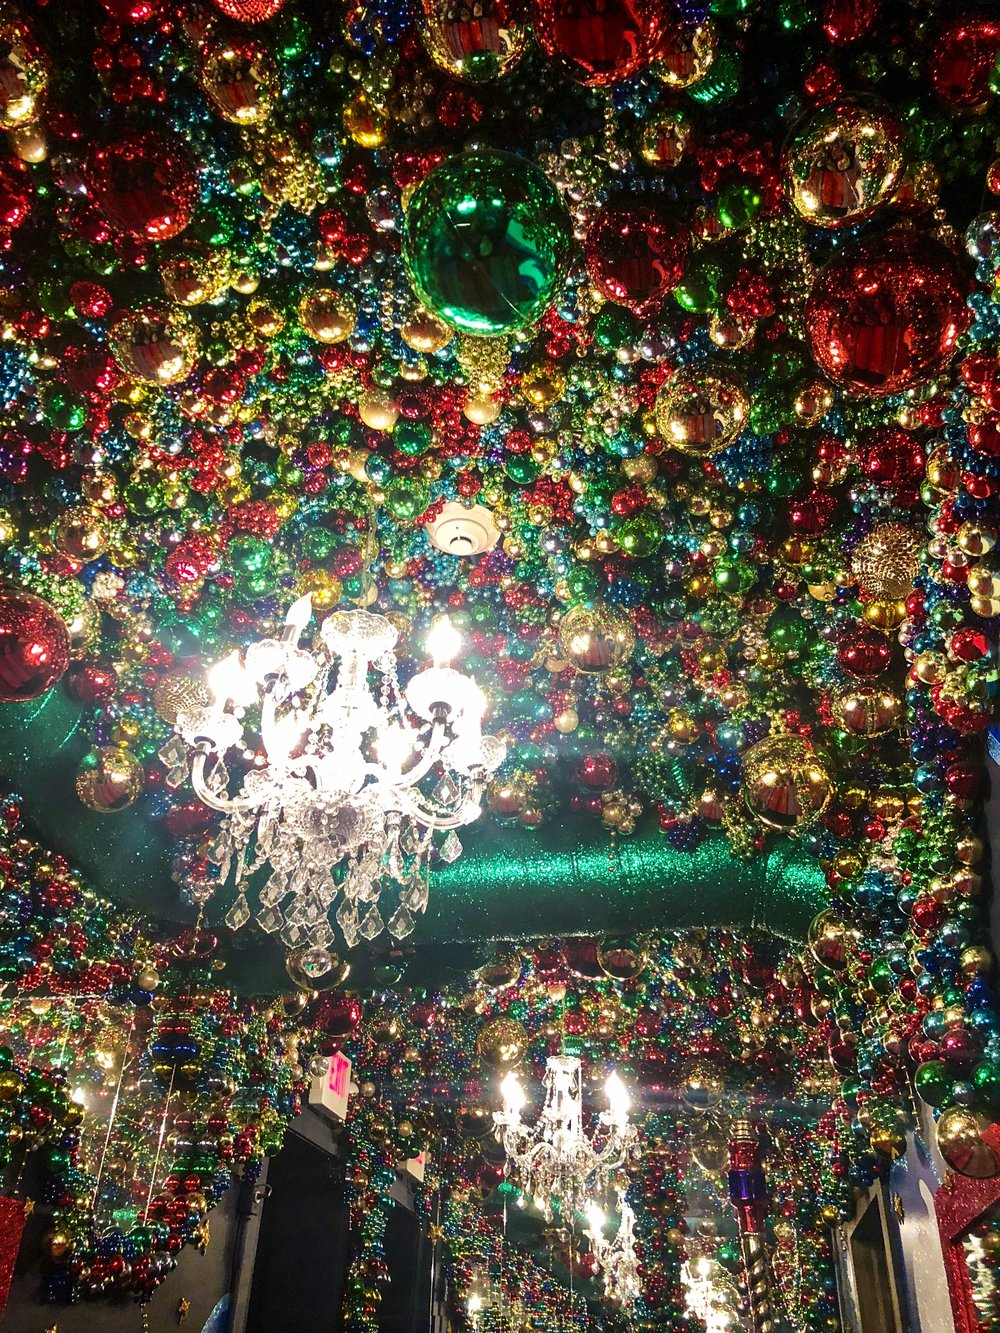 Thousands of ornaments!